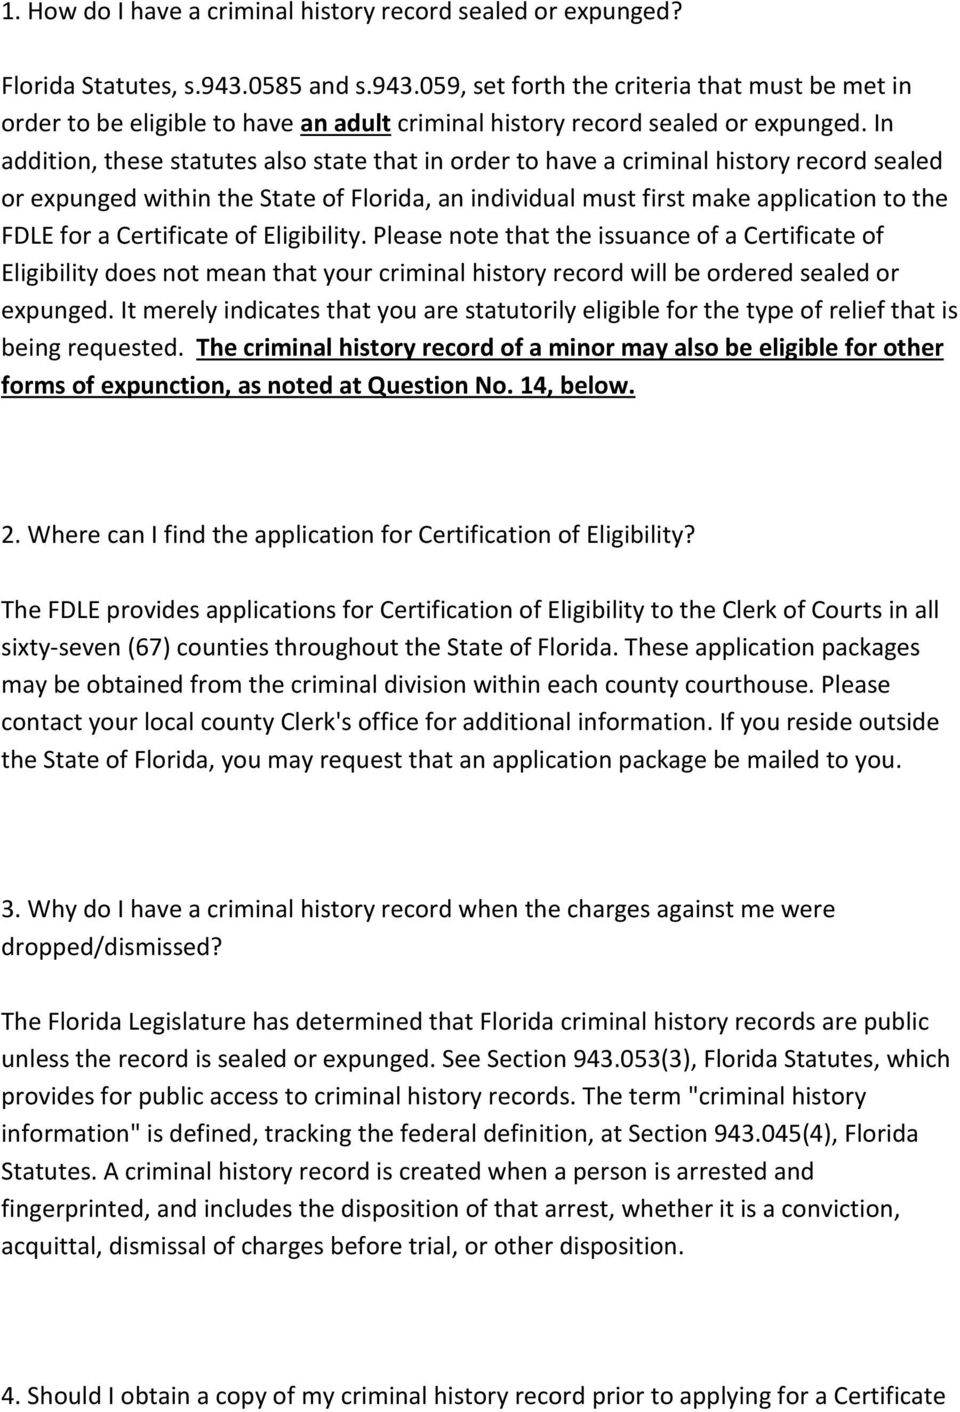 In addition, these statutes also state that in order to have a criminal history record sealed or expunged within the State of Florida, an individual must first make application to the FDLE for a